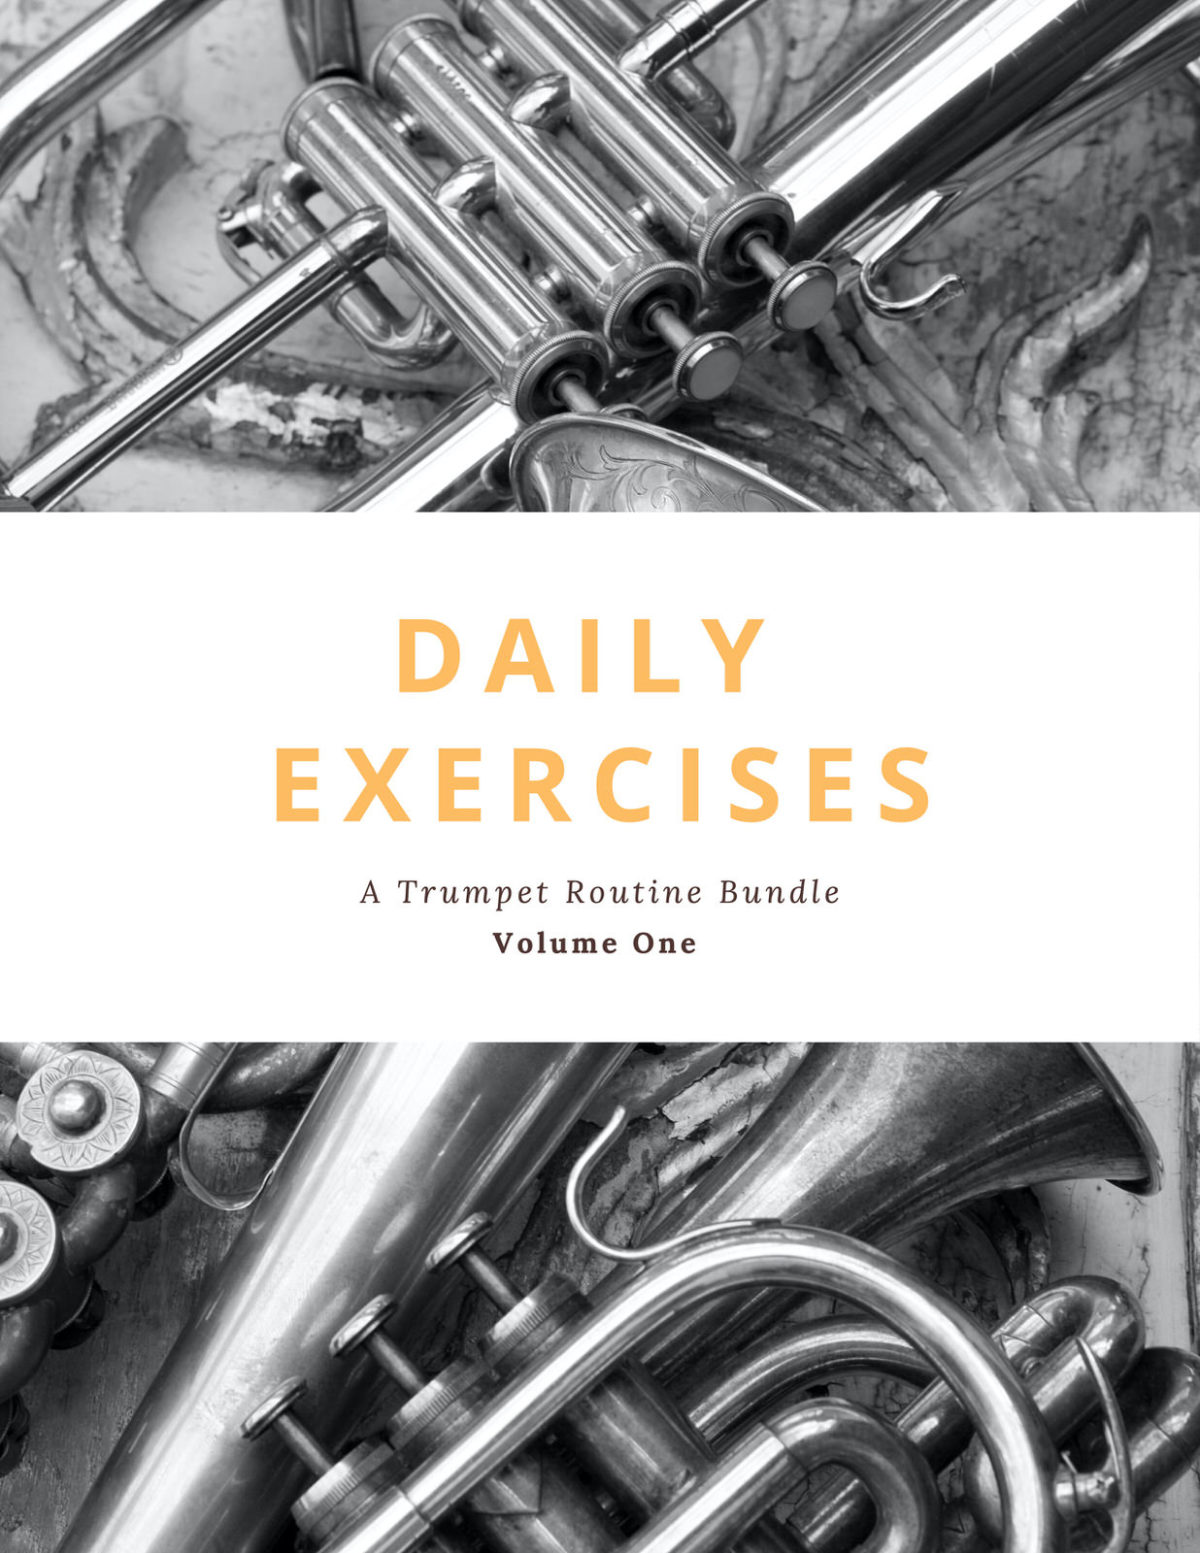 Daily Exercises Vol.1